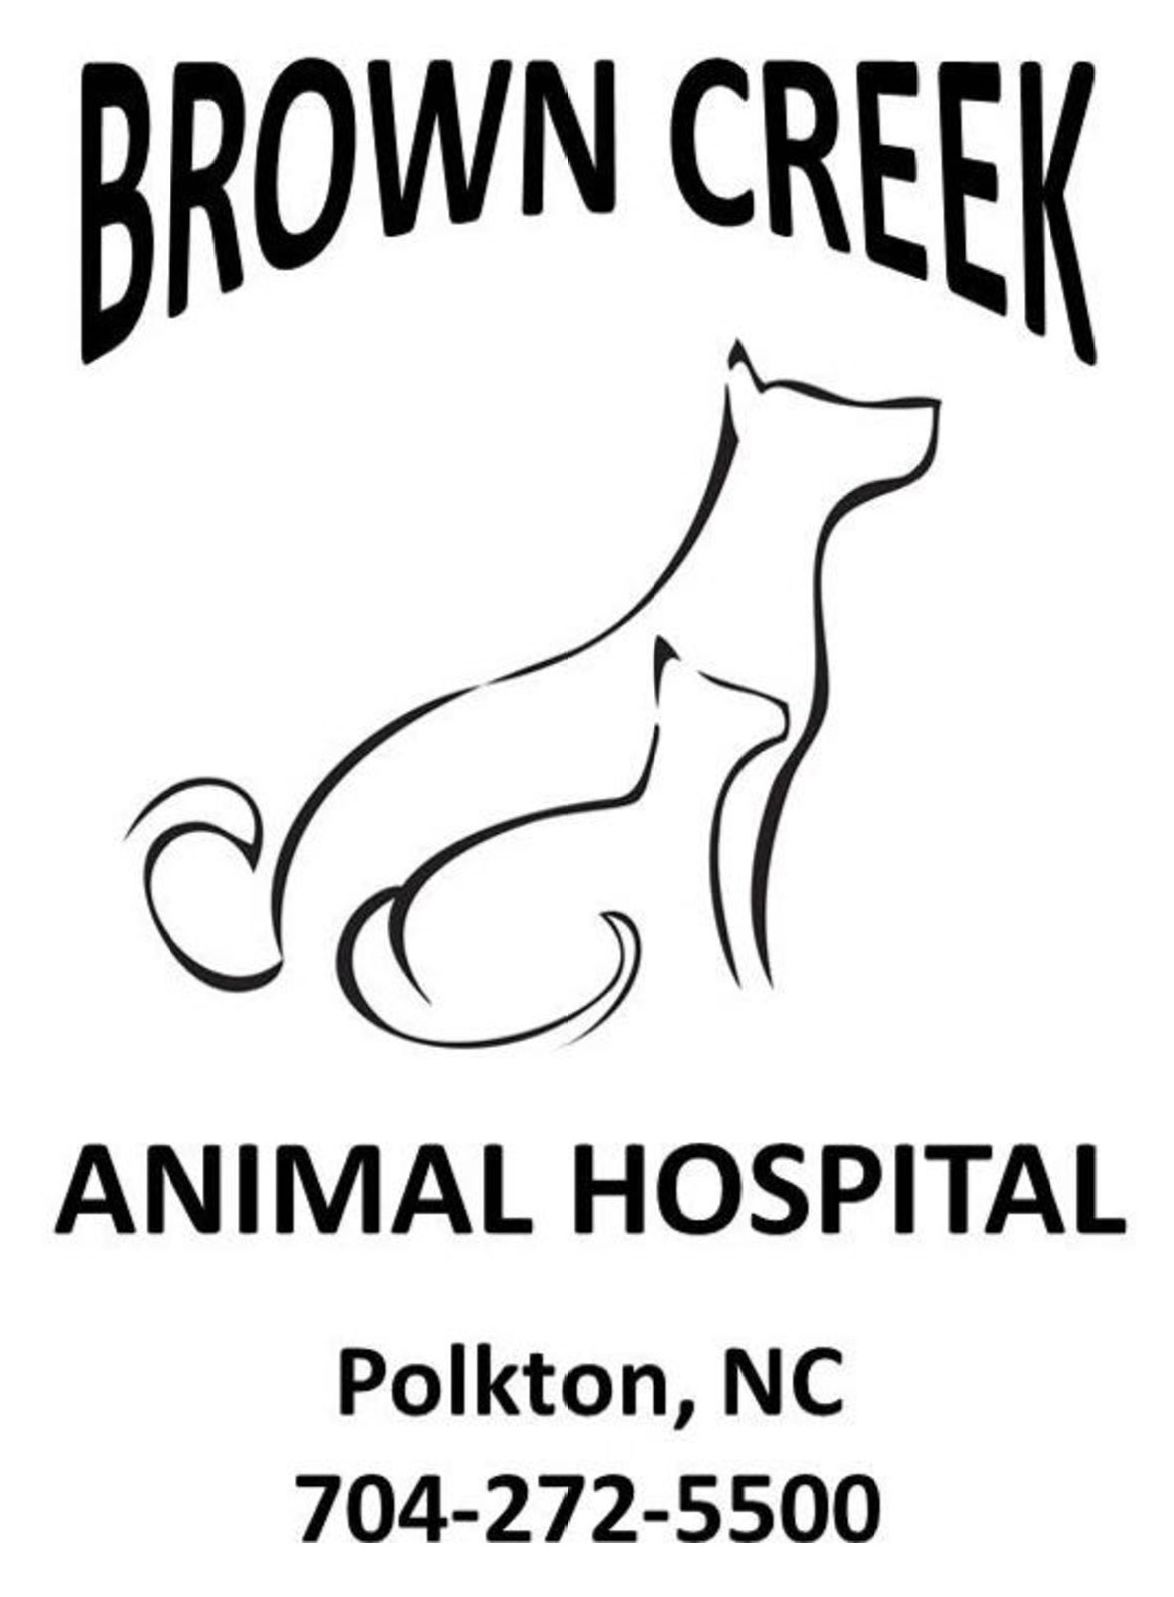 Brown Creek Animal Hospital